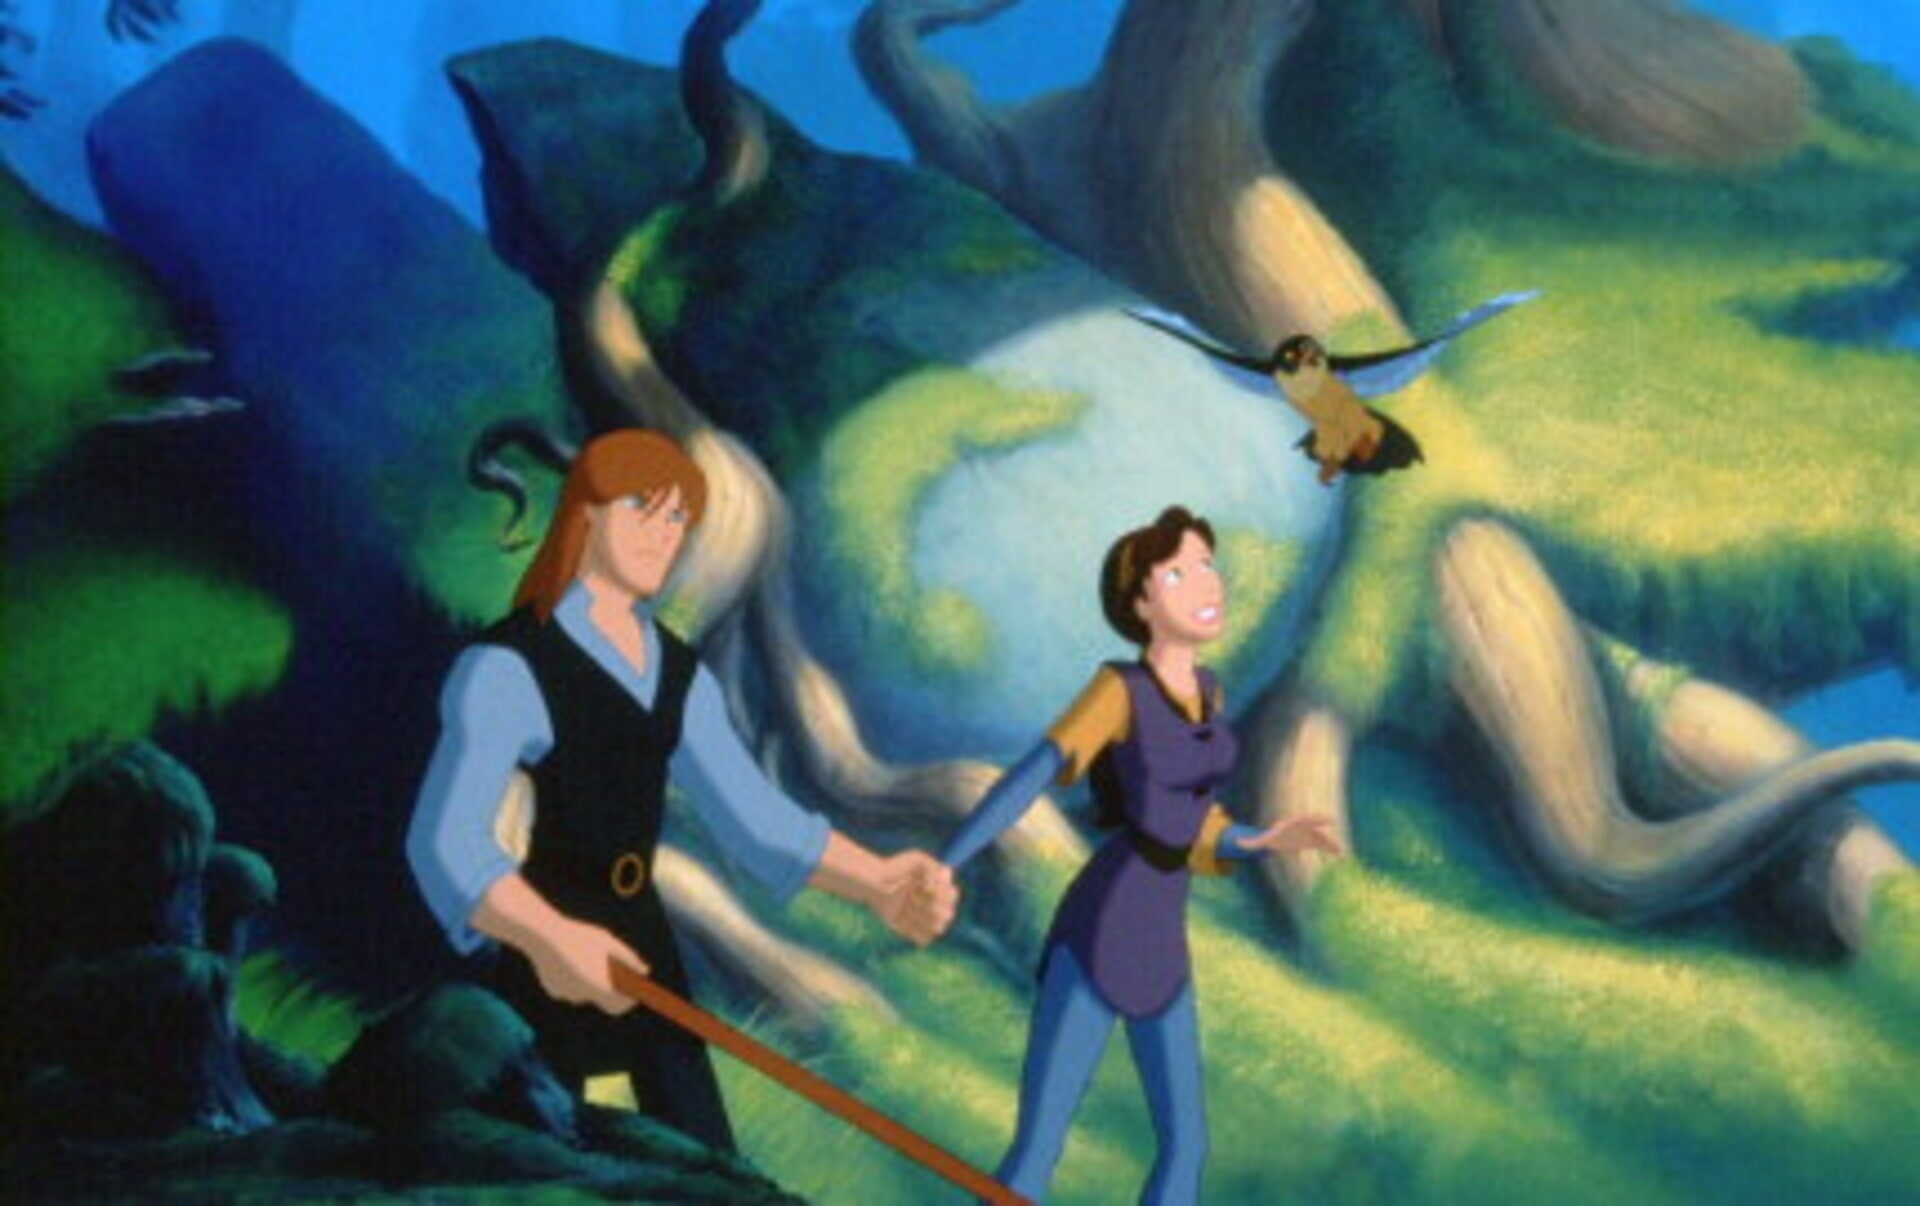 Quest for Camelot - Image 6